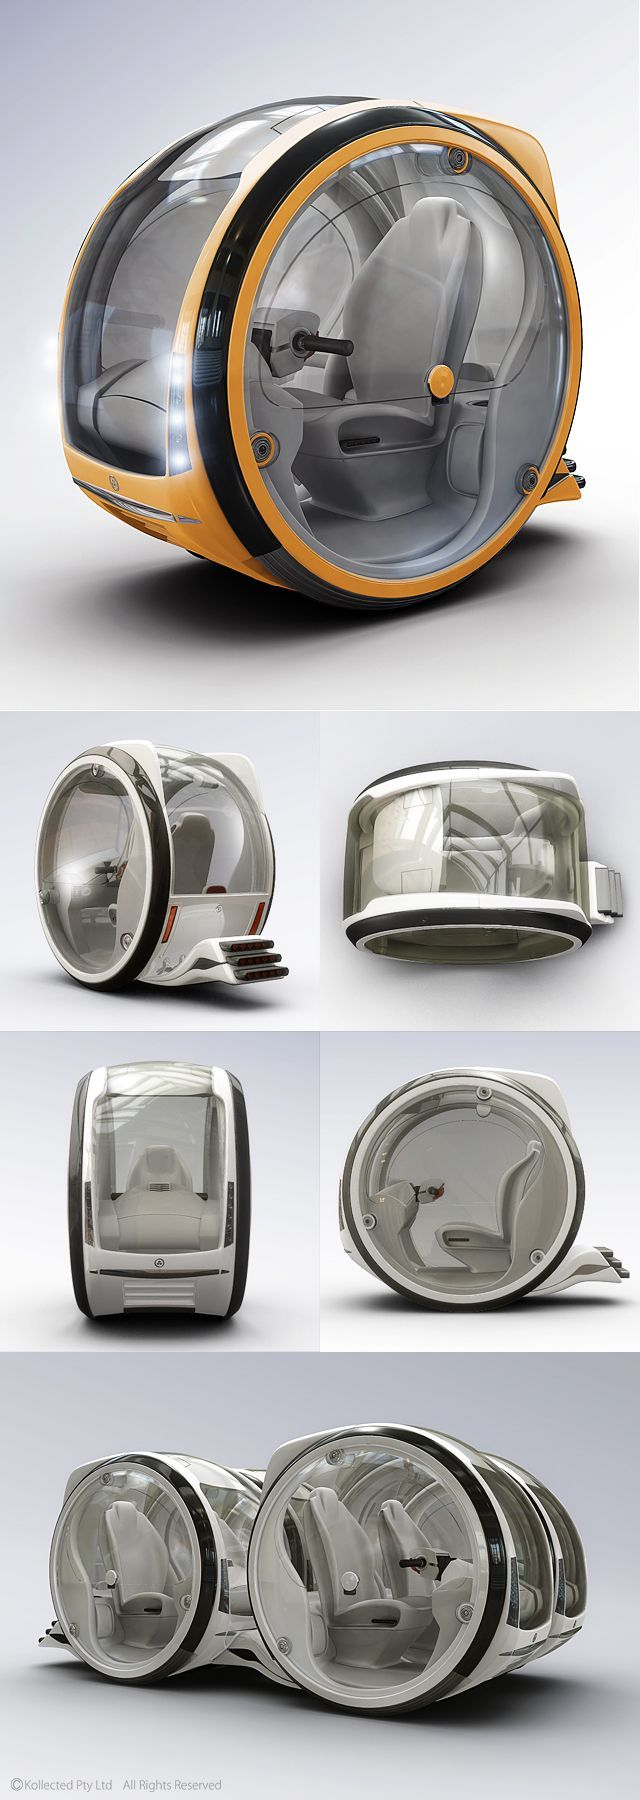 SNAP! by Nick Kaloterakis [Futuristic Vehicles: http://futuristicnews.com/category/future-transportation/]